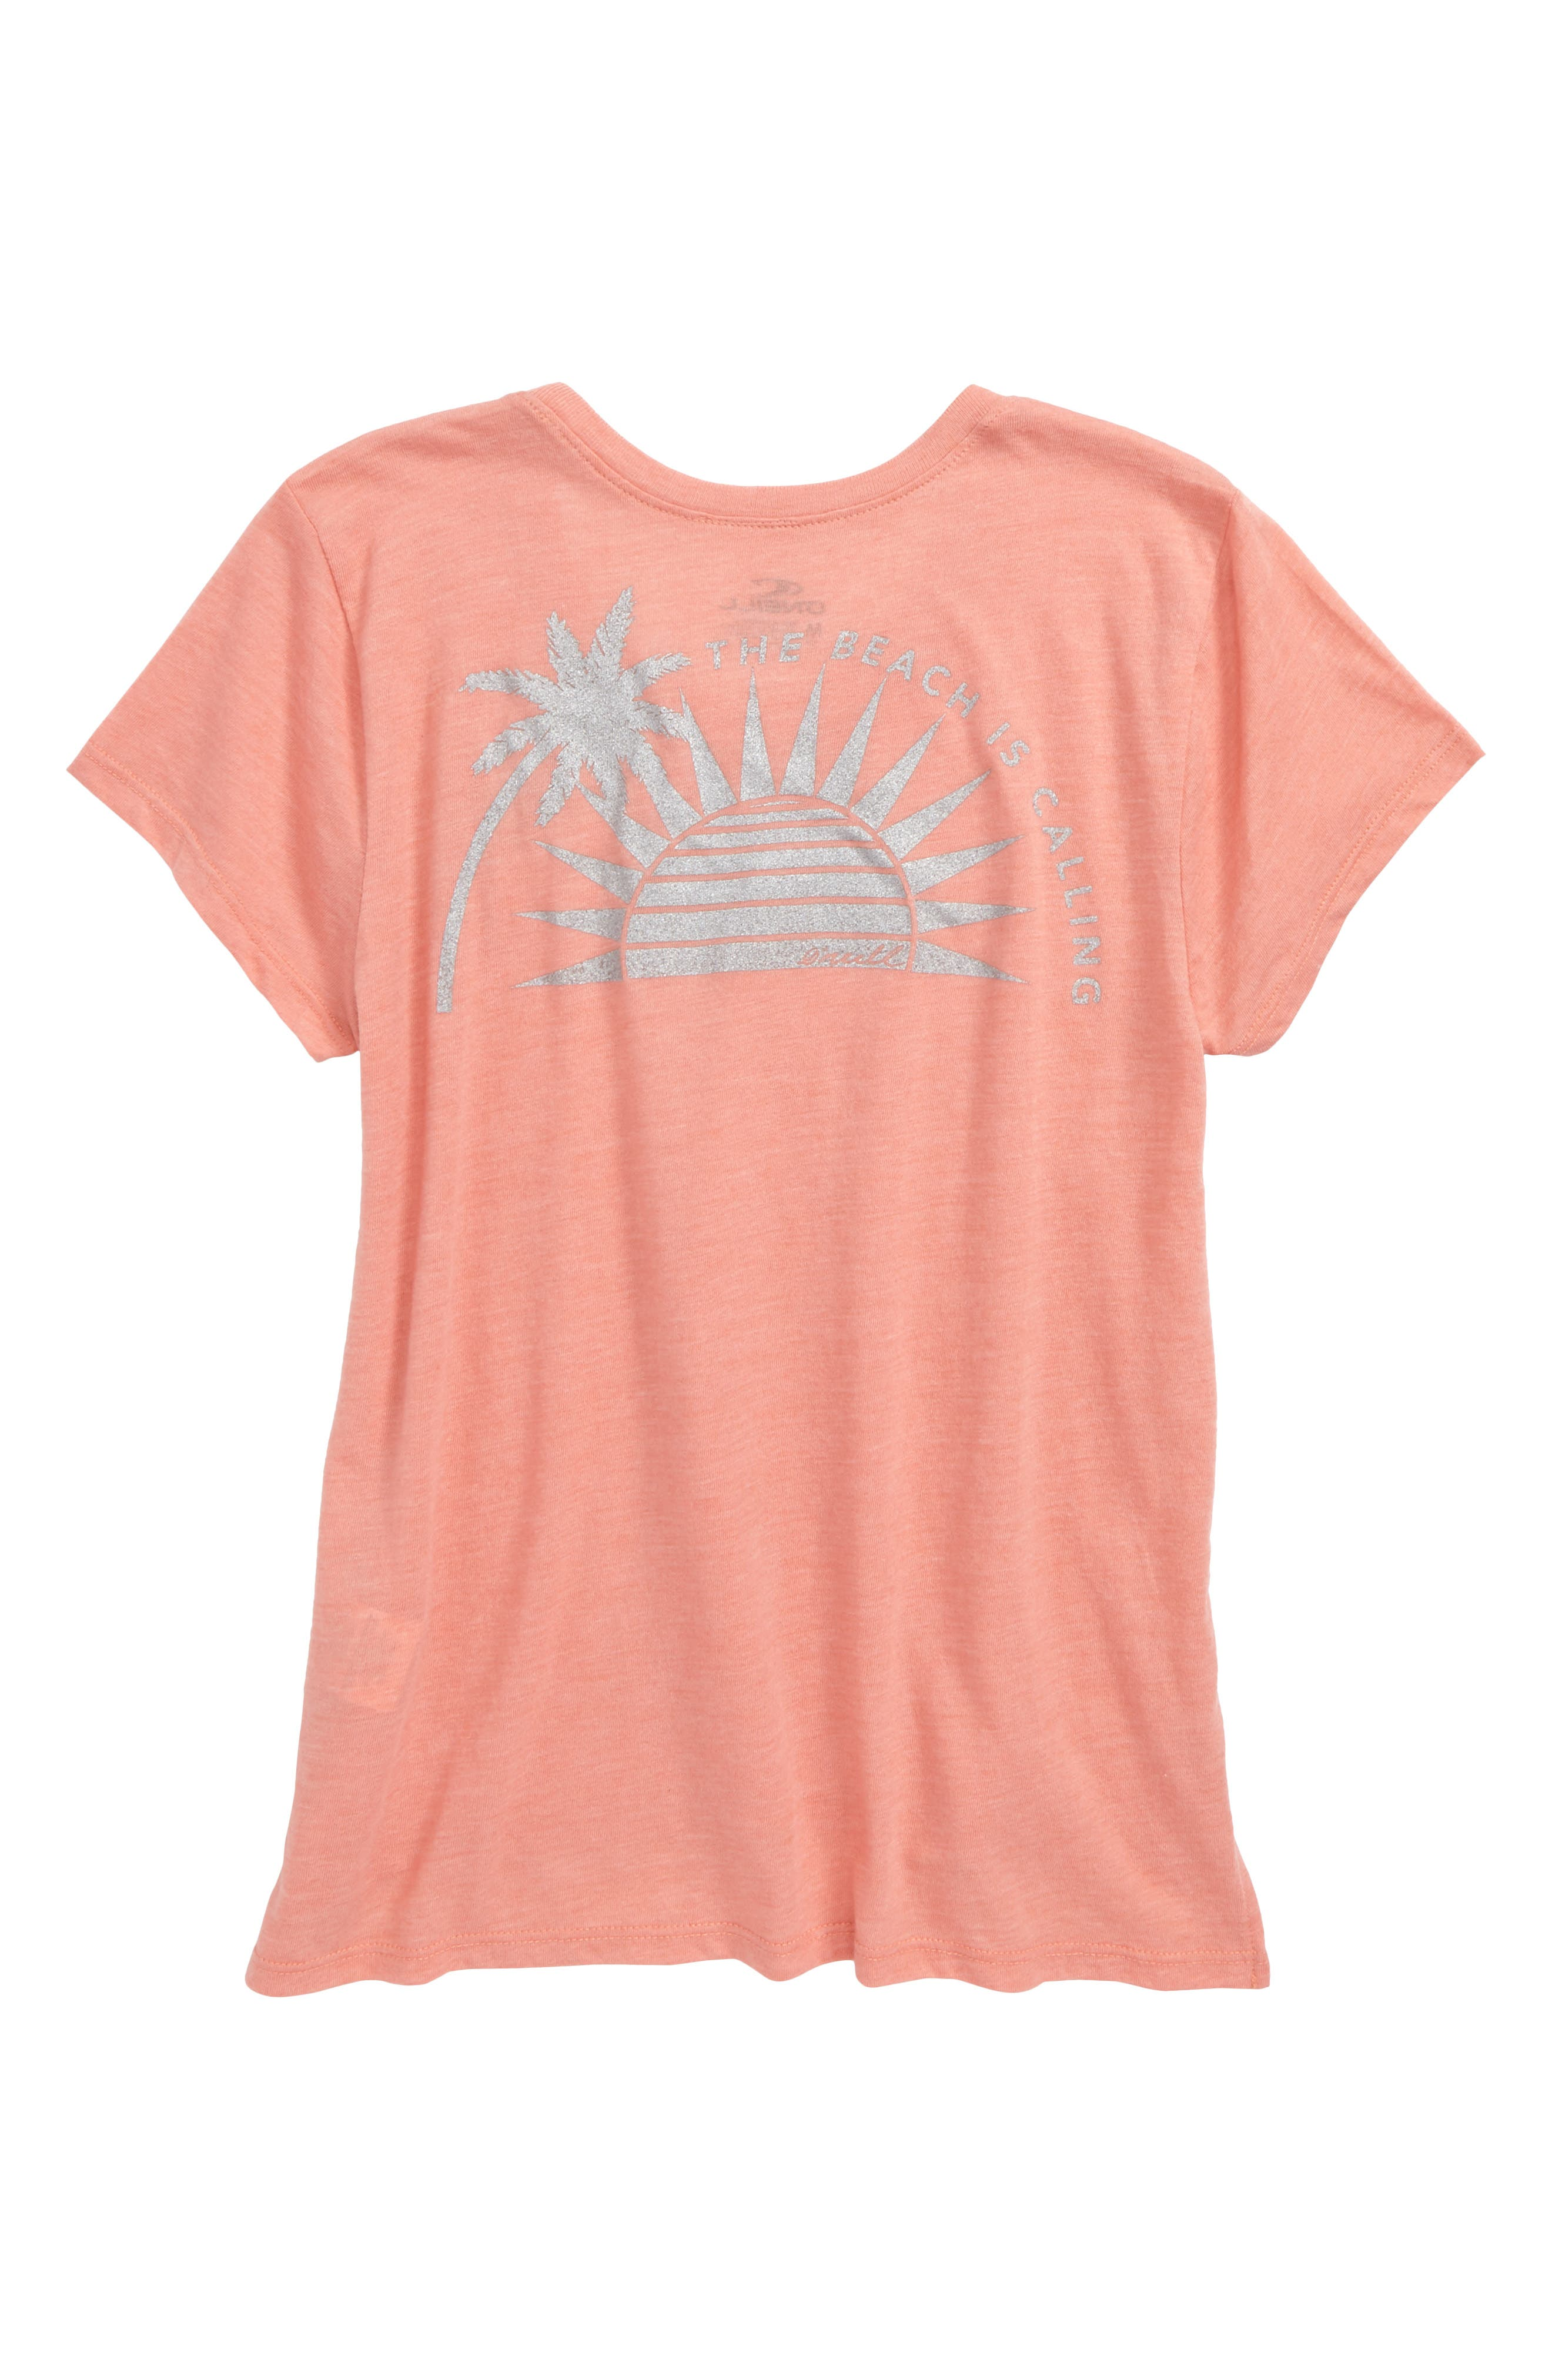 Sunny Side Graphic Tee,                             Alternate thumbnail 2, color,                             Terracotta- Cla